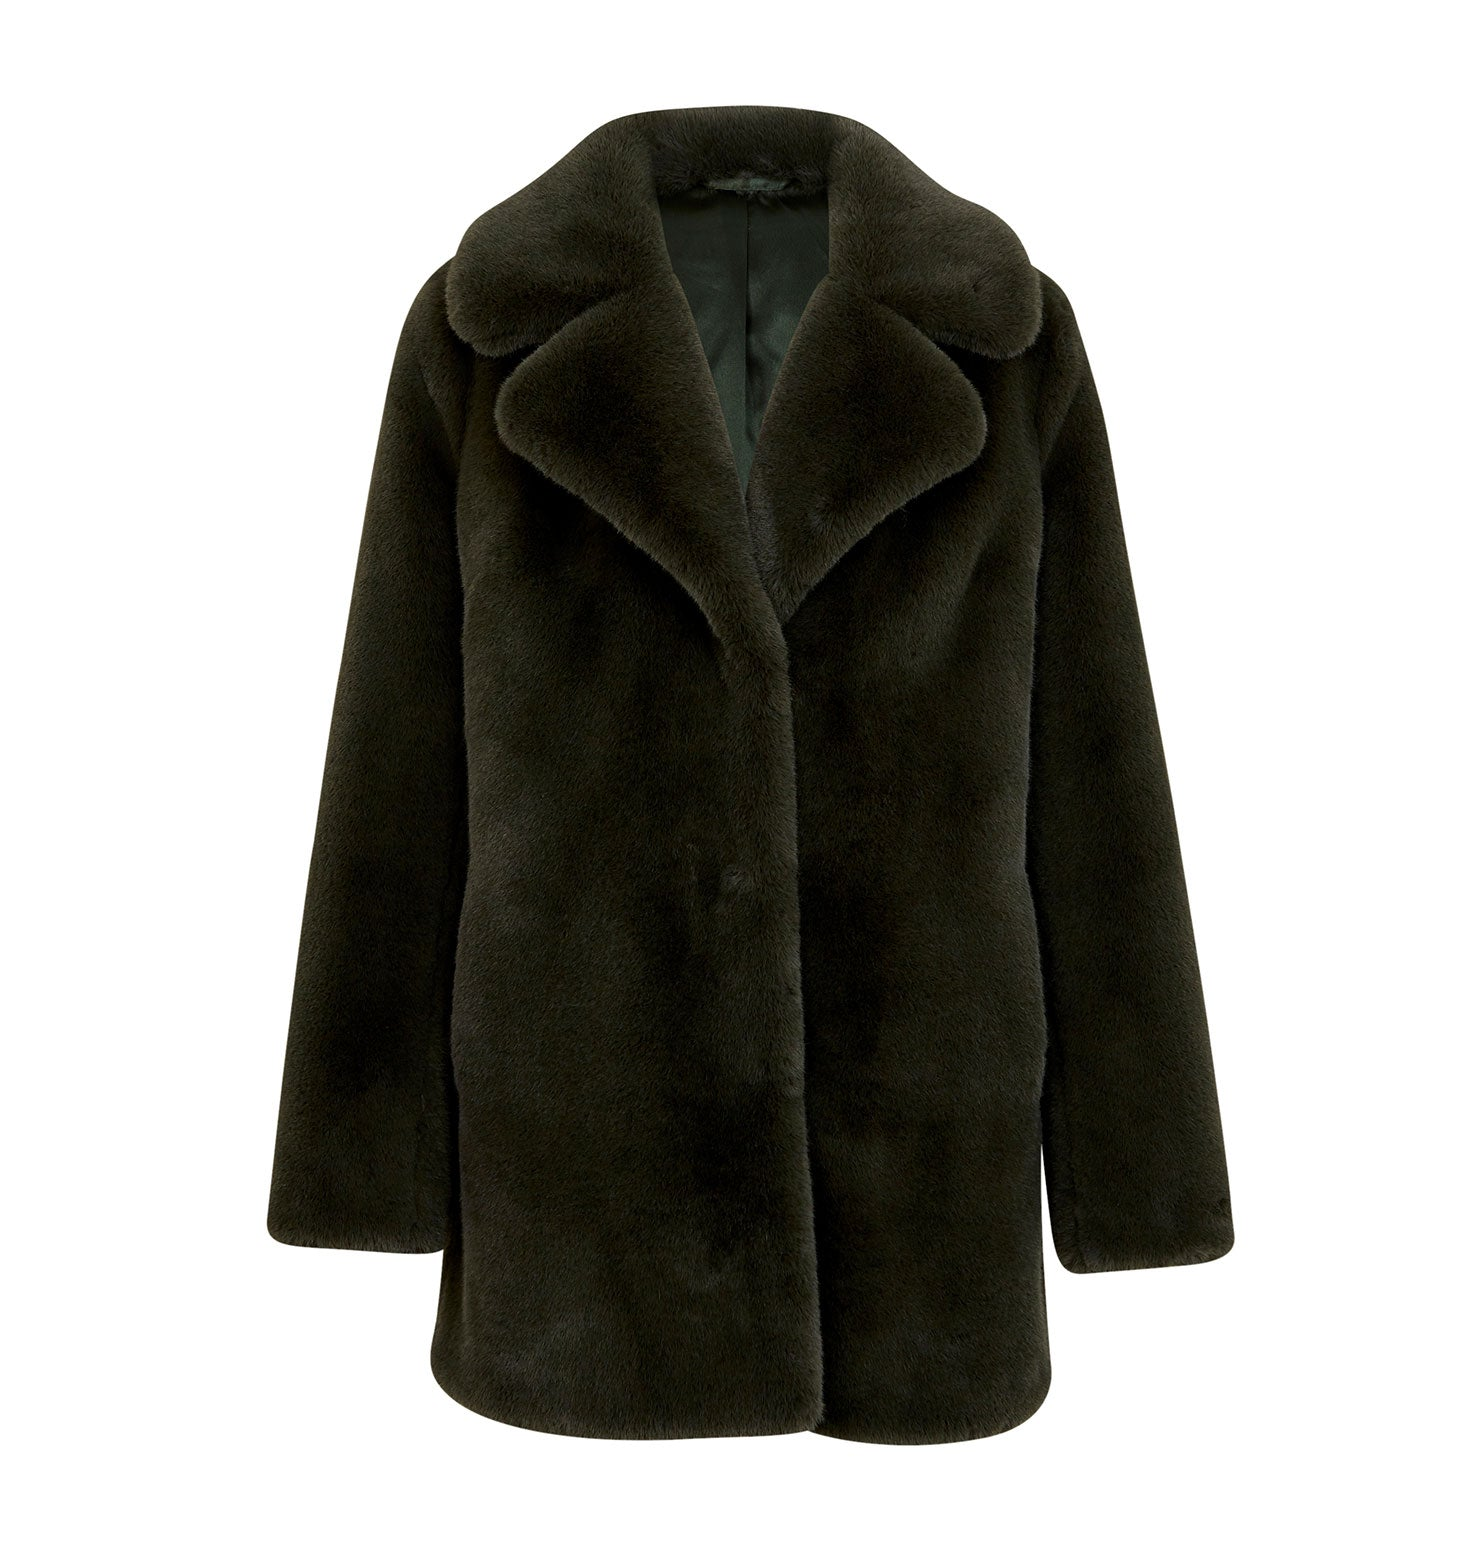 Minimalist Faux Fur Jacket - Forest Green